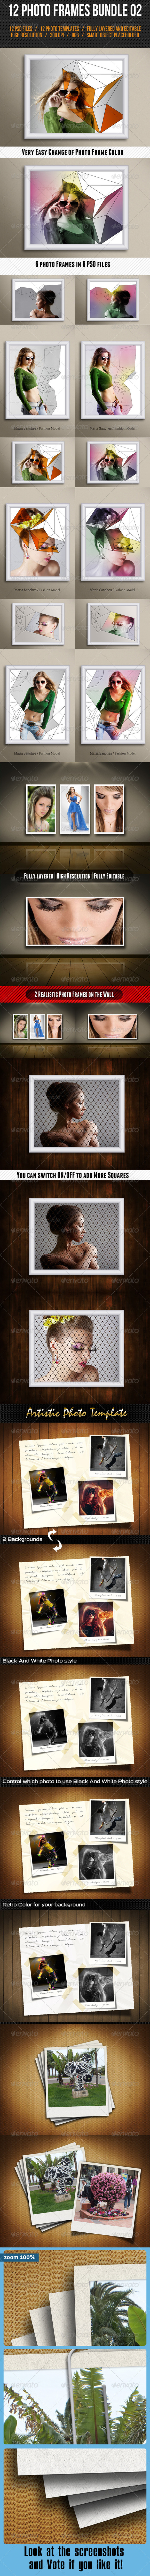 GraphicRiver 12 Photo Frames Bundle 02 7741184